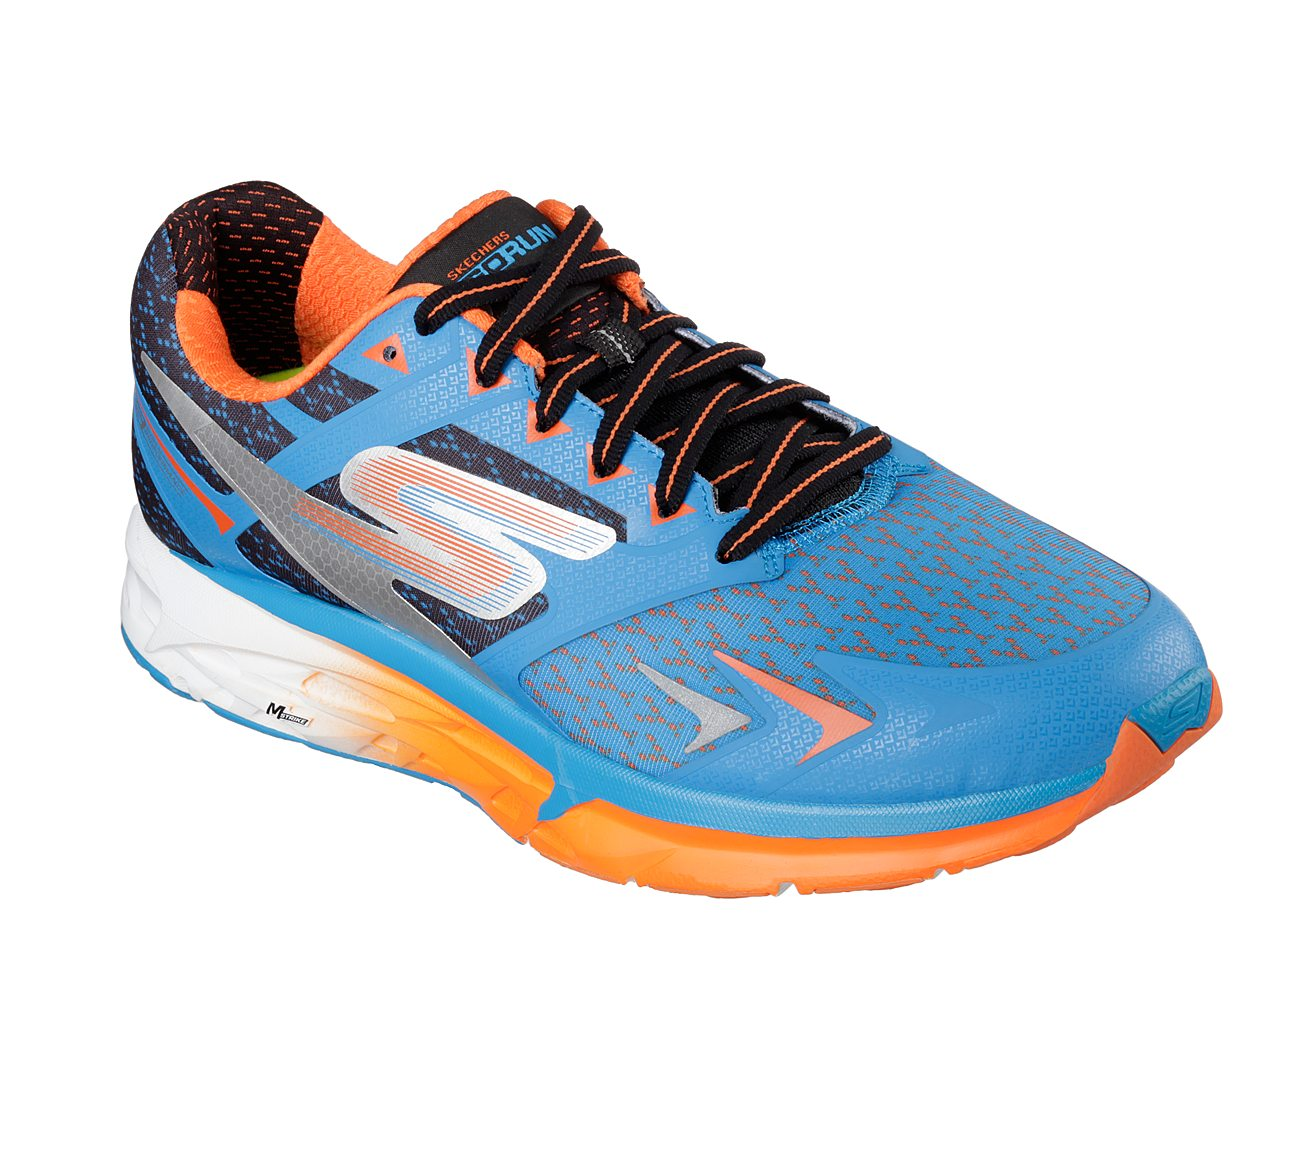 d1498cd7833c Buy SKECHERS Skechers GOrun Forza Skechers Performance Shoes only ...